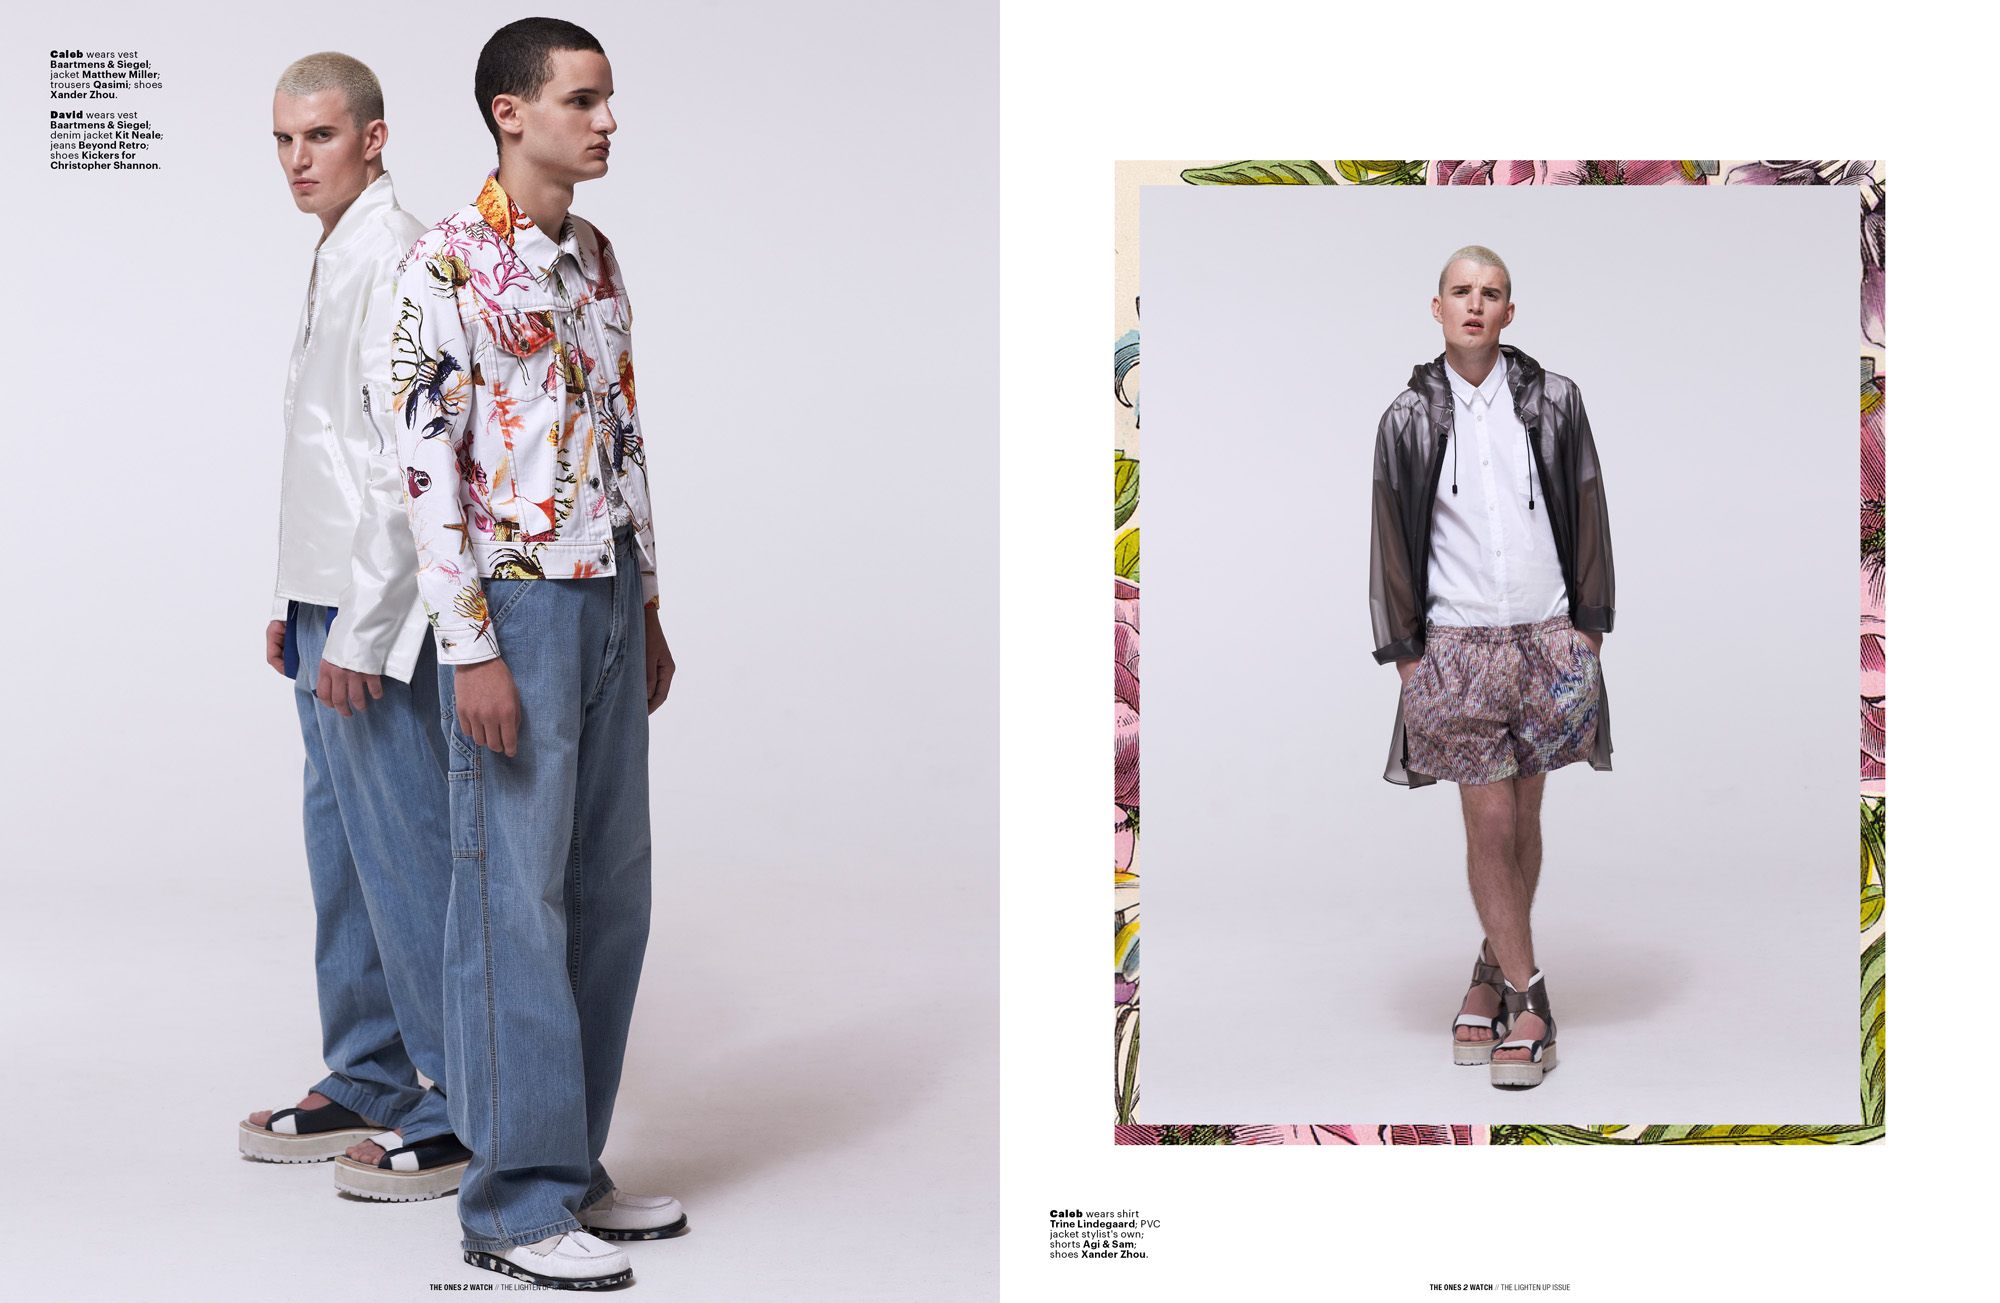 Left: Caleb wears vest Baartmens & Siegel; jacket Matthew Miller; trousers Qasimi; shoes Xander Zhou.  David wears vest Baartmens & Siegel; denim jacket Kit Neale; jeans Beyond Retro; shoes Kickers for Christopher Shannon. <br />Right: Caleb wears shirt Trine Lindegaard; PVC jacket stylist's own; shorts Agi & Sam; shoes Xander Zhou.